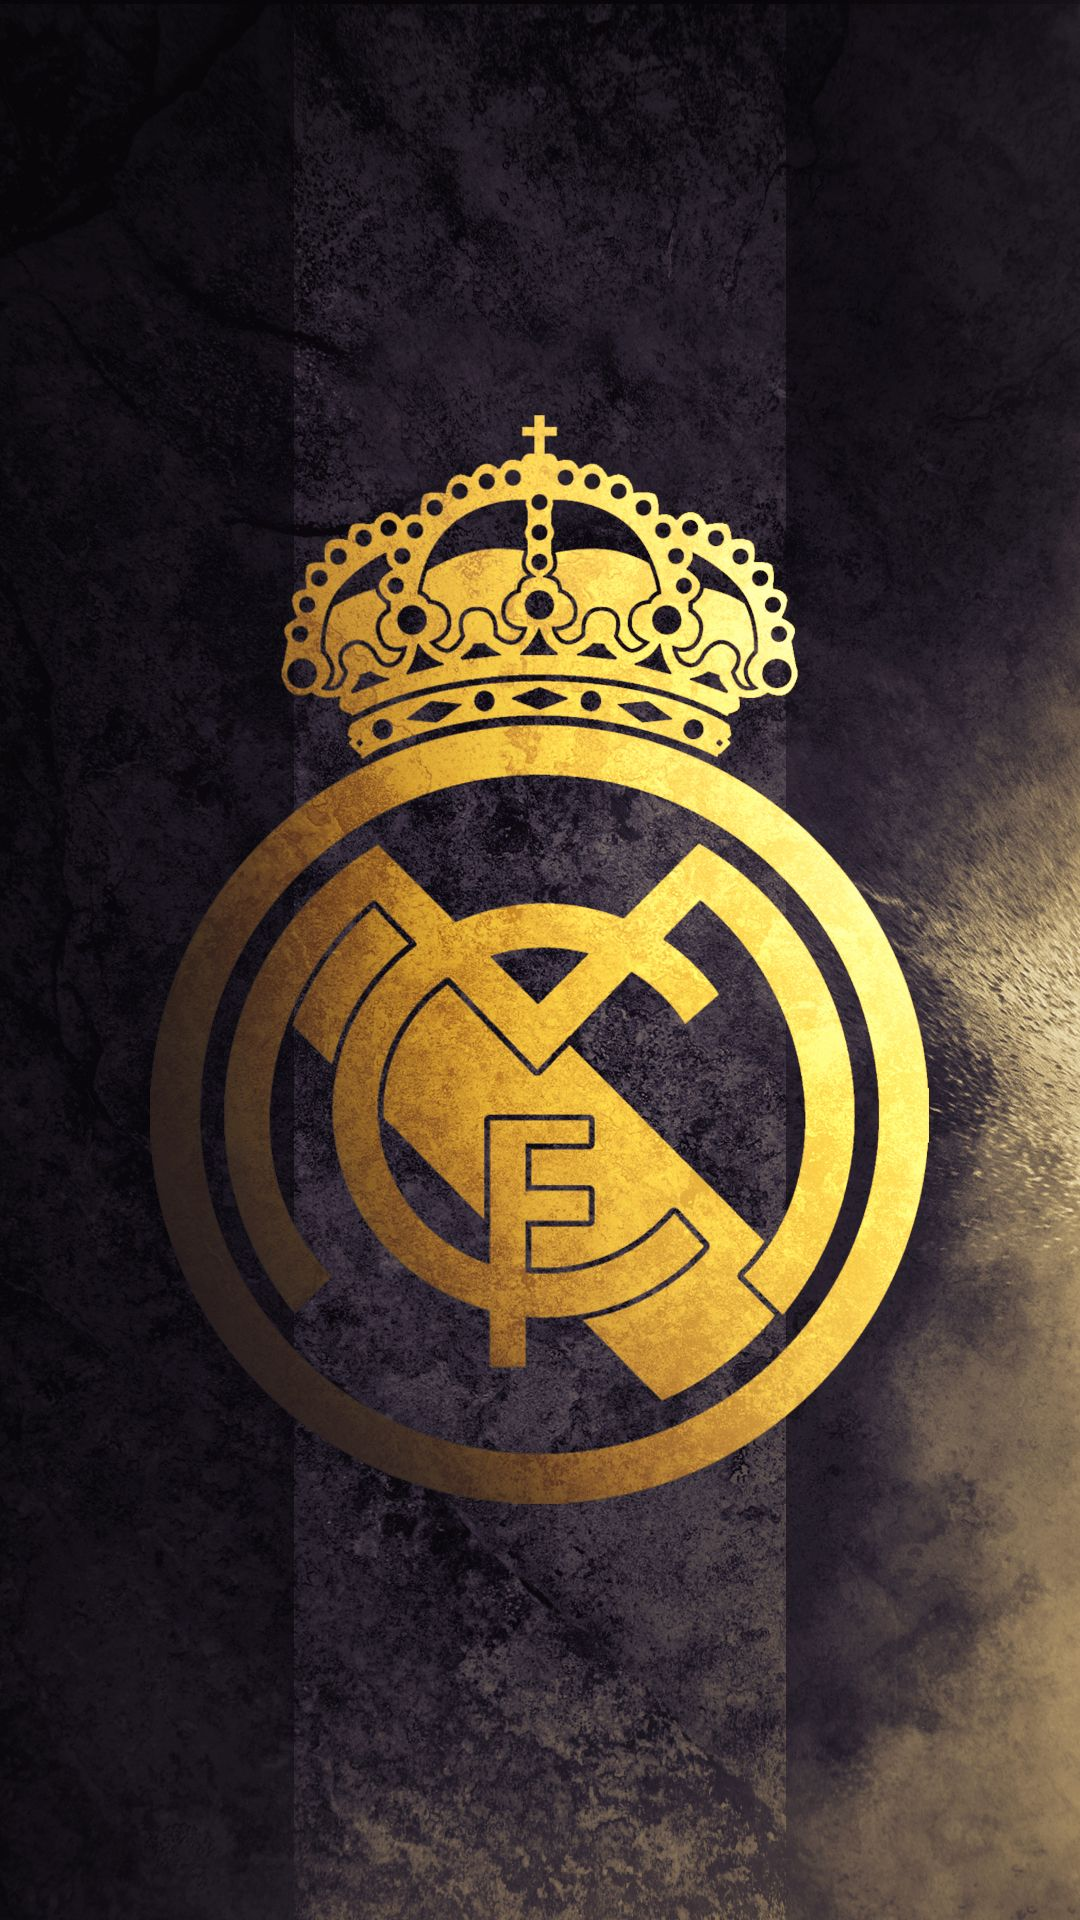 Real Madrid Wallpaper Iphone In 2020 Real Madrid Wallpapers Real Madrid Logo Wallpapers Madrid Wallpaper